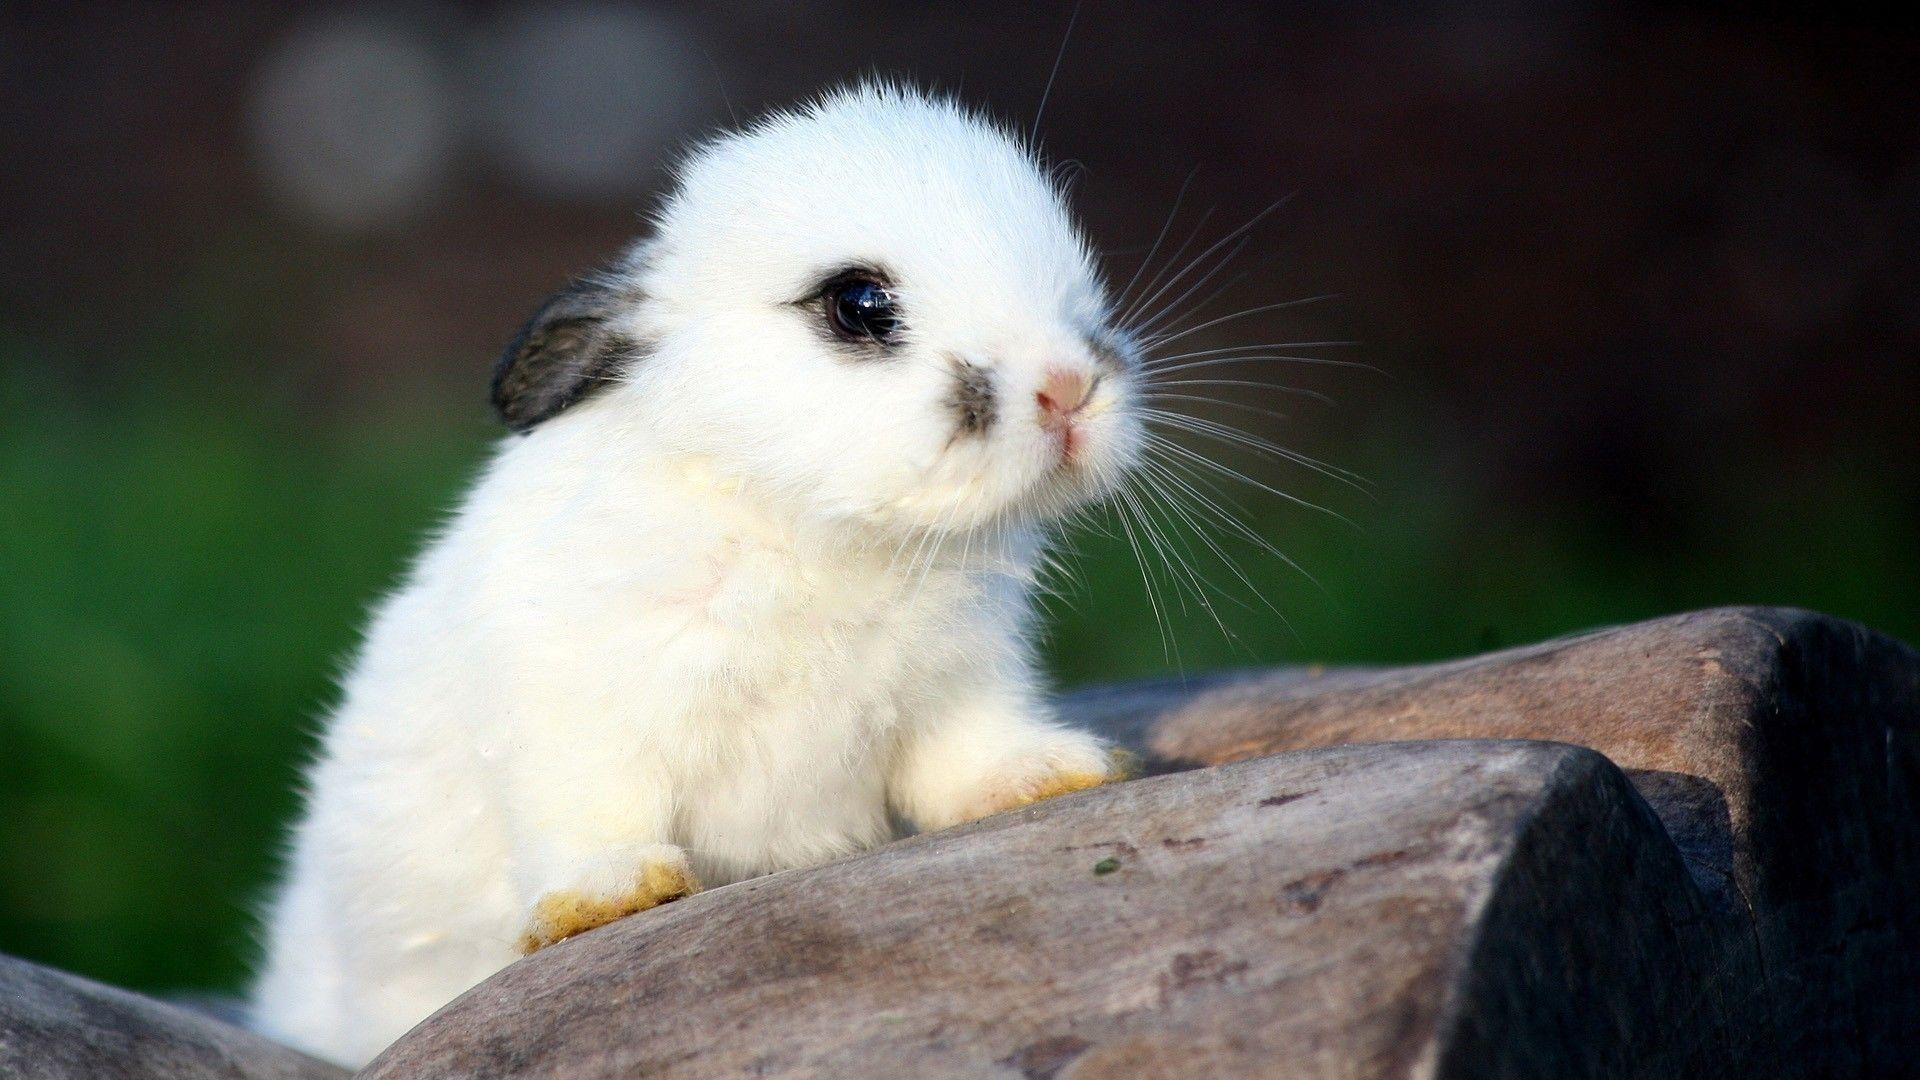 Cute Baby Animal Wallpapers 64 pictures 1920x1080